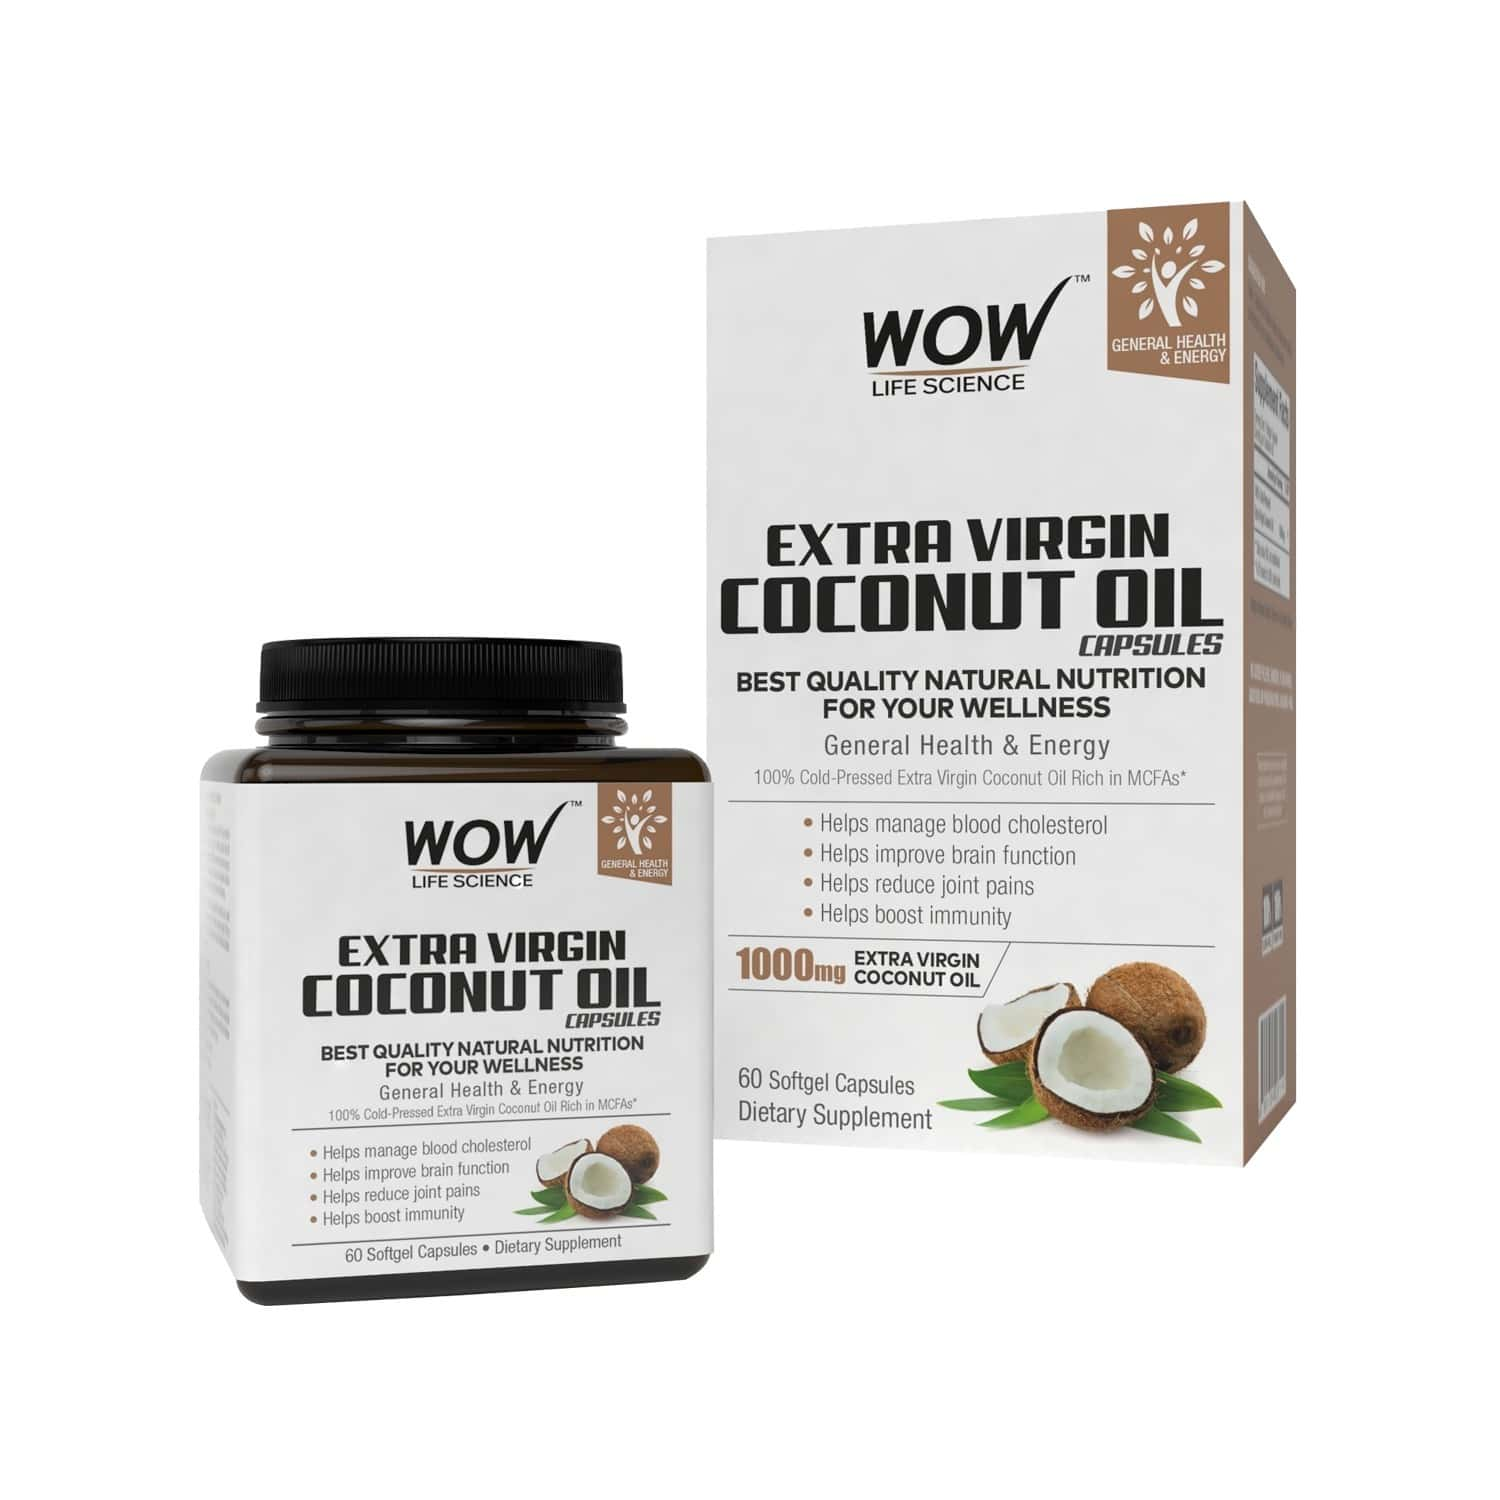 Wow Life Science Extra Virgin Coconut Oil - 60 Softgel Capsules